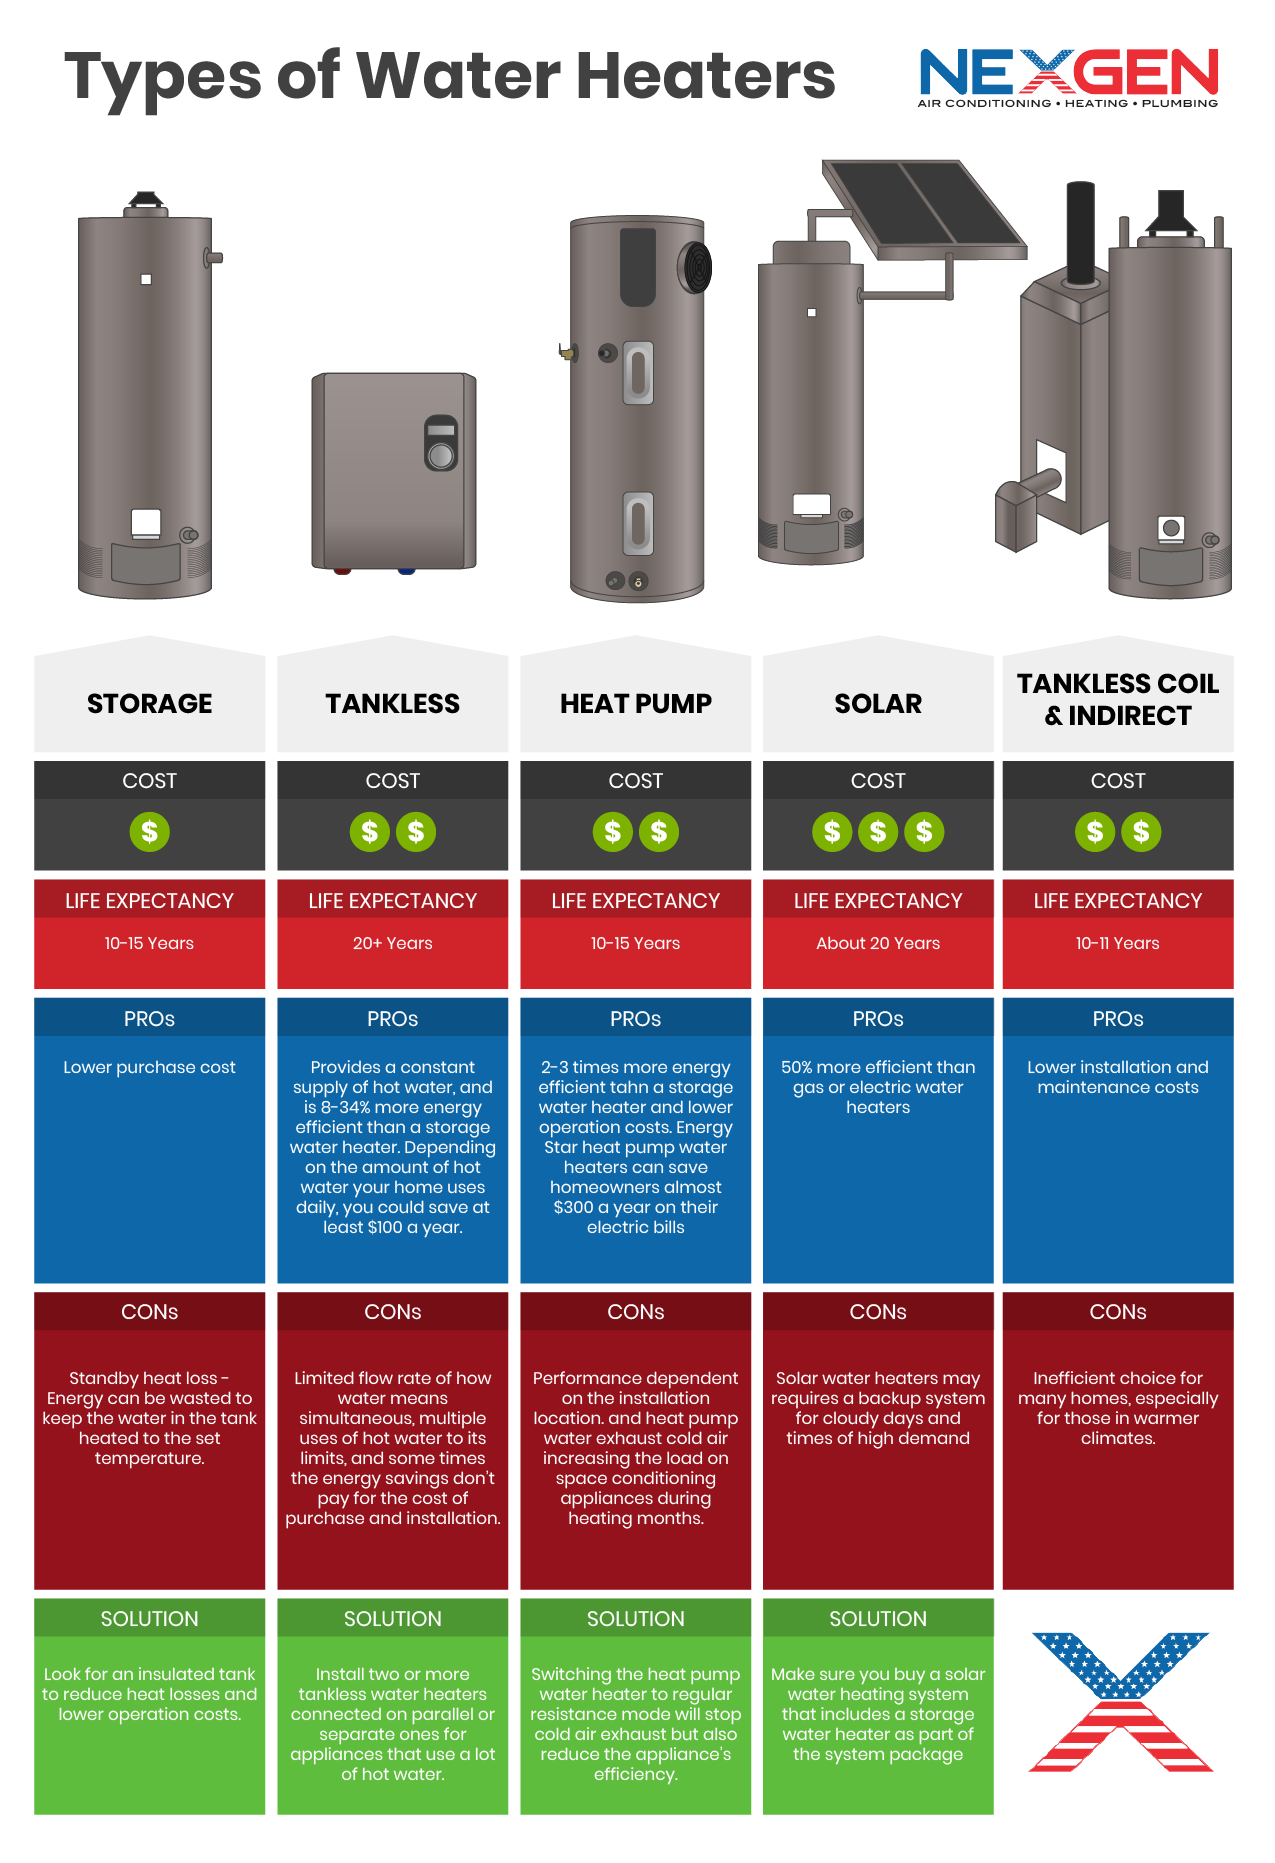 Types of Water Heaters Infographic